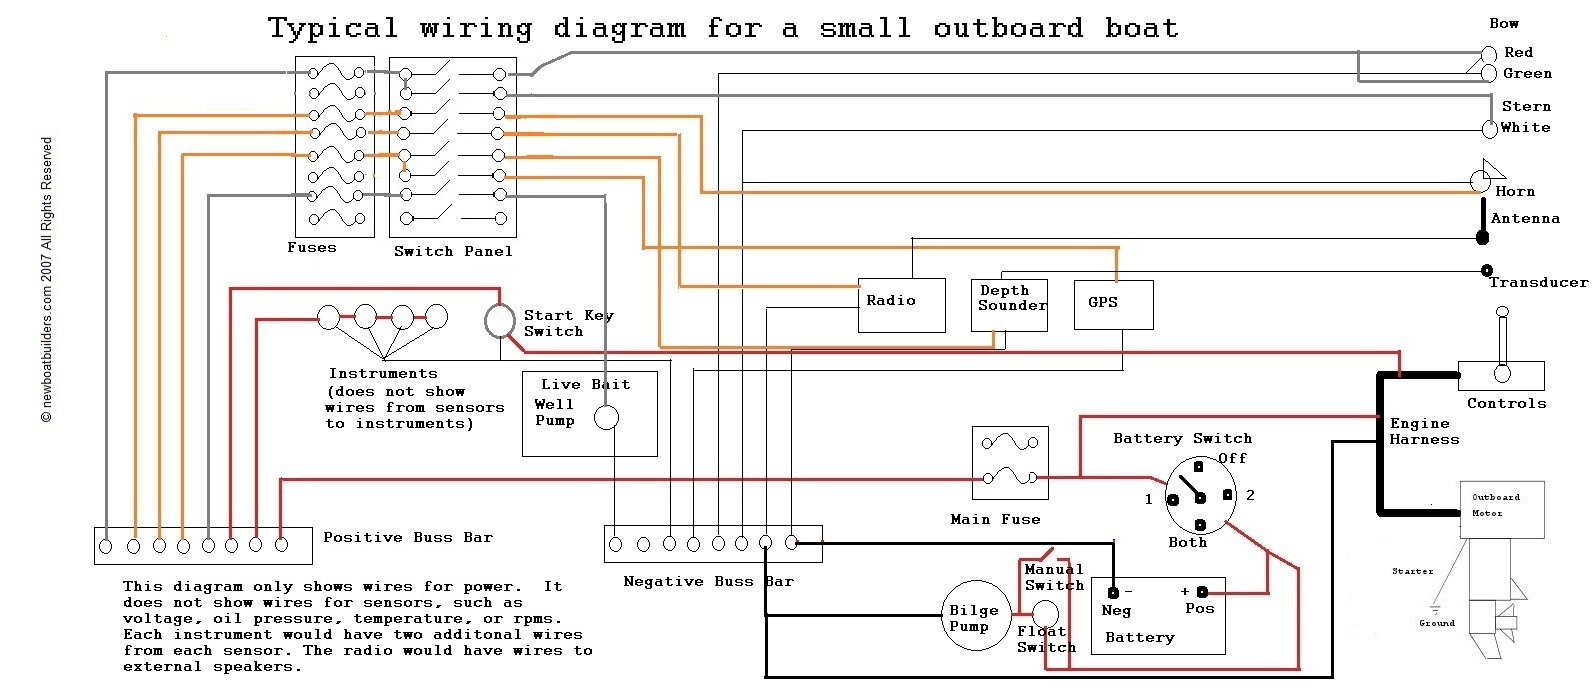 marine switch wiring diagram boat building standards basic electricity wiring your boat wiring diagram ·